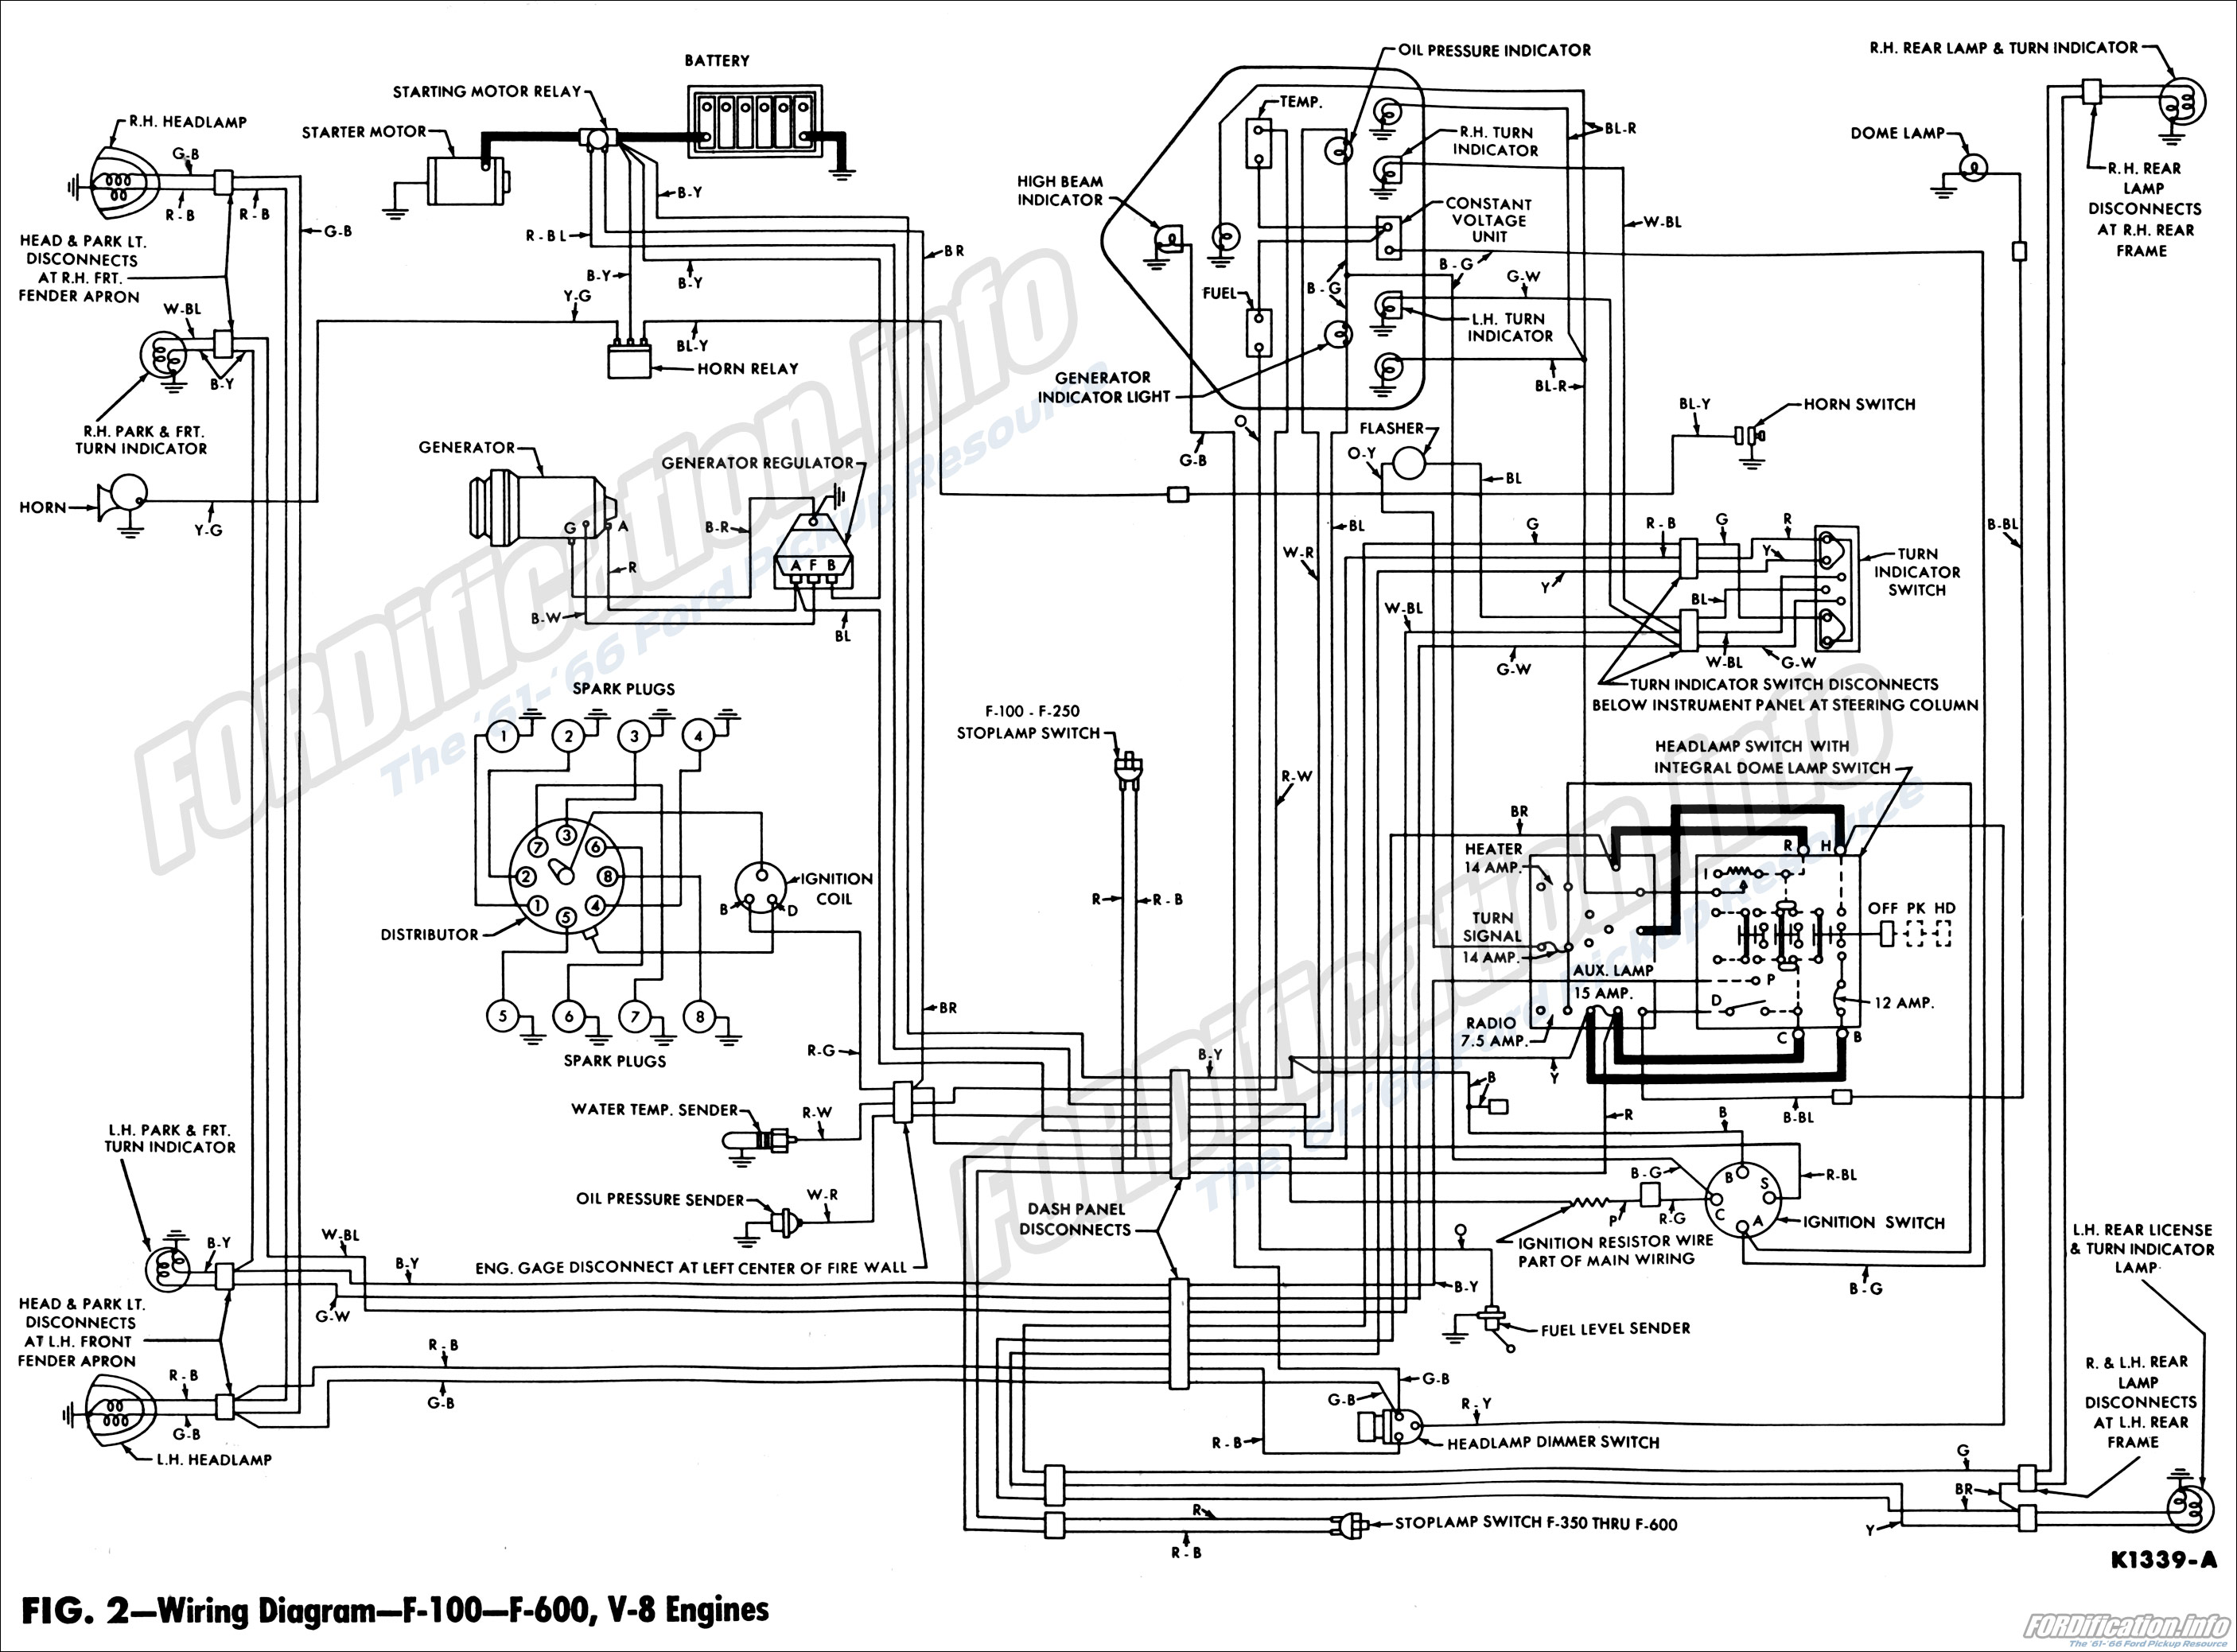 1962 wiring diagram - f100-f600,